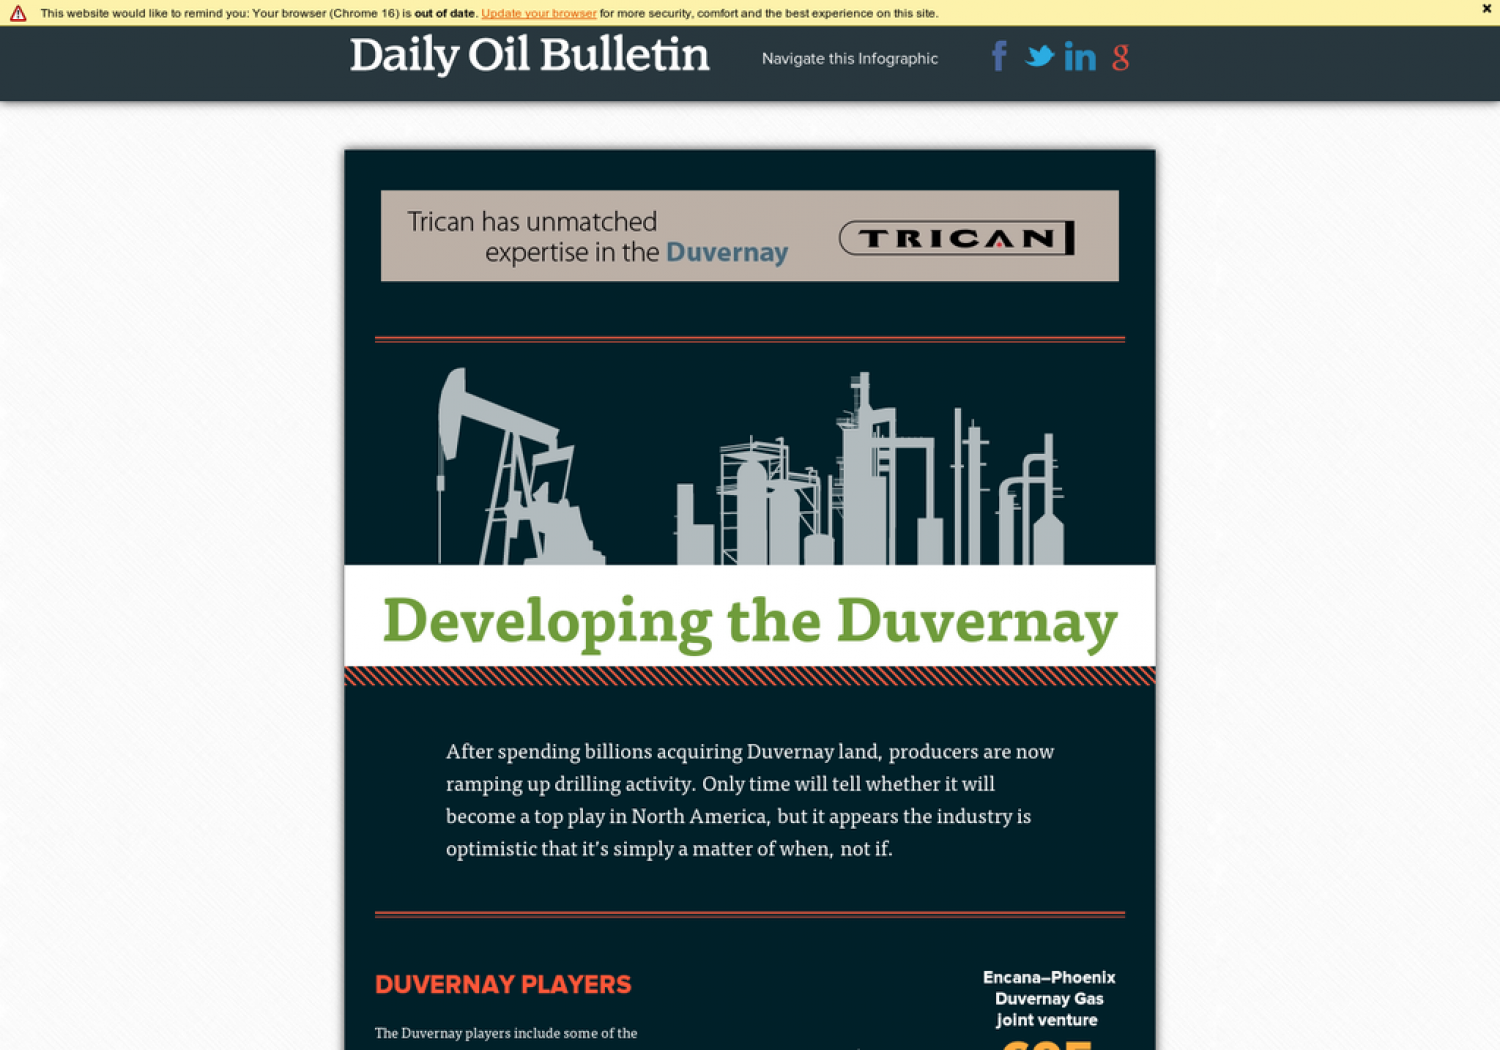 Developing the Duvernay Infographic